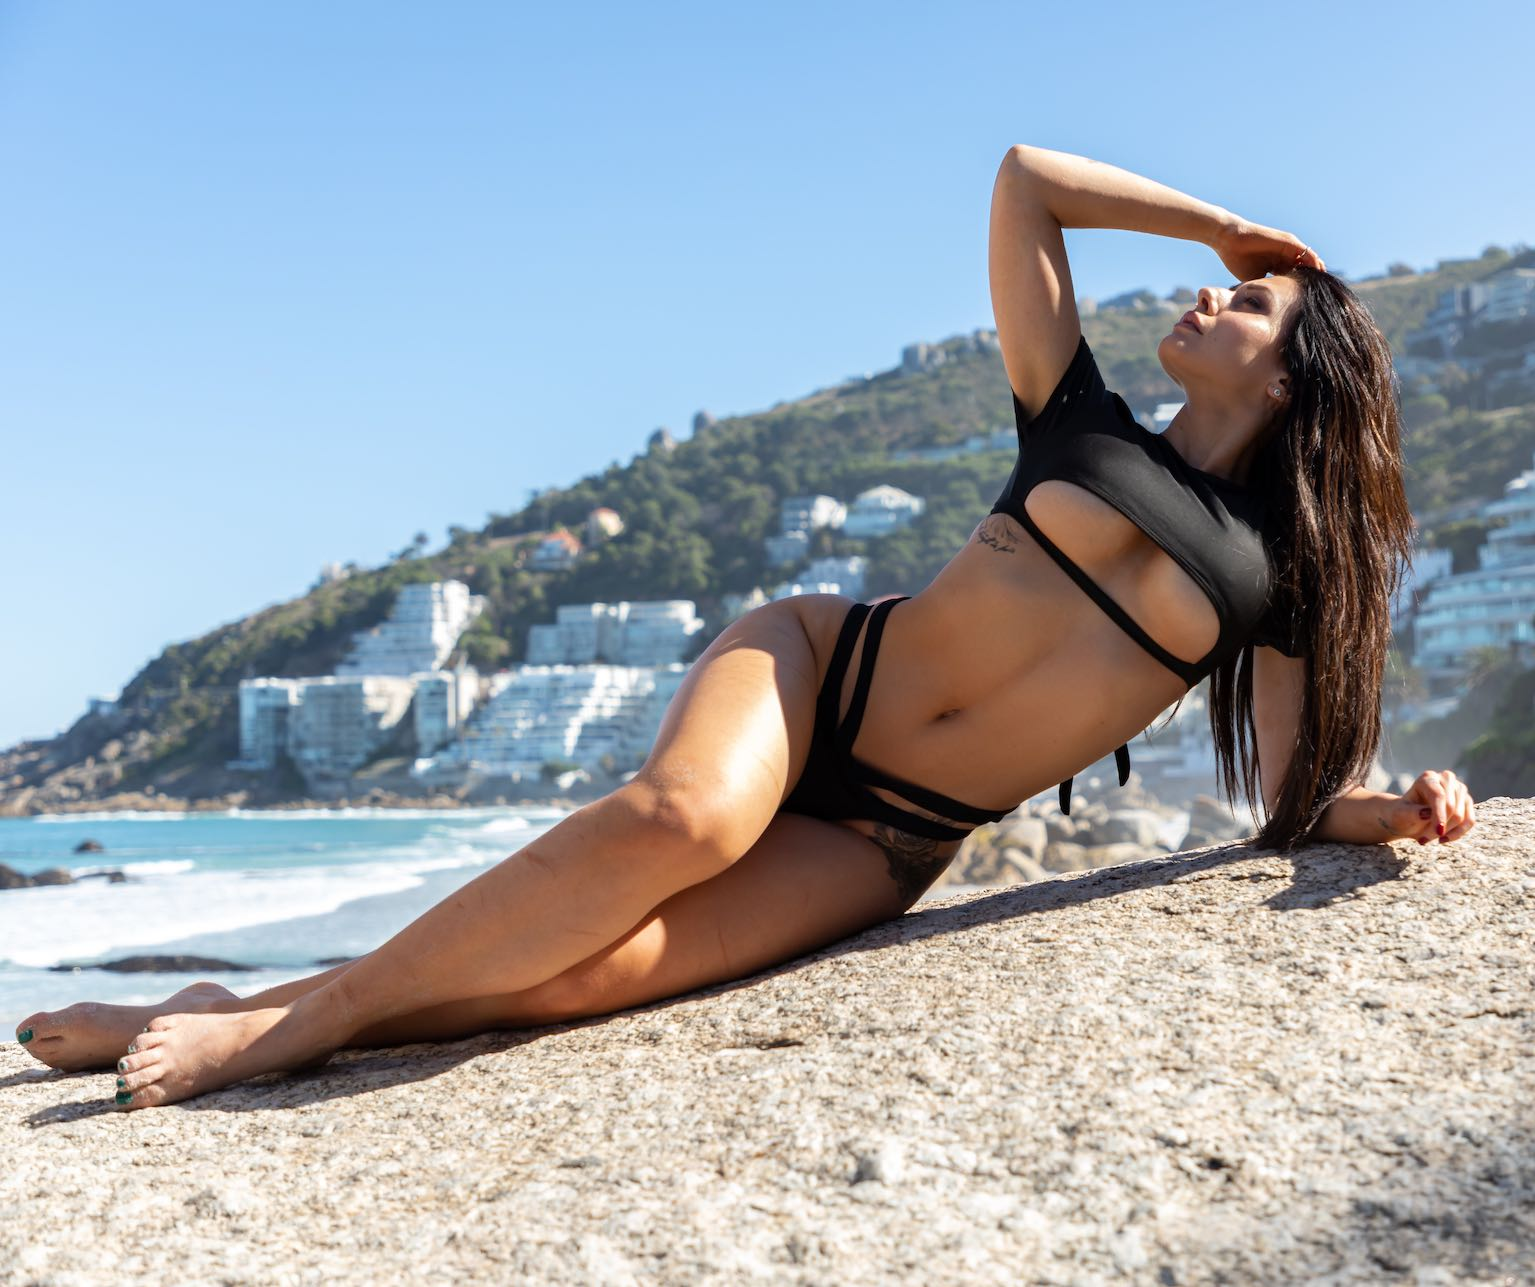 Our SA Girls feature with Alice Orion